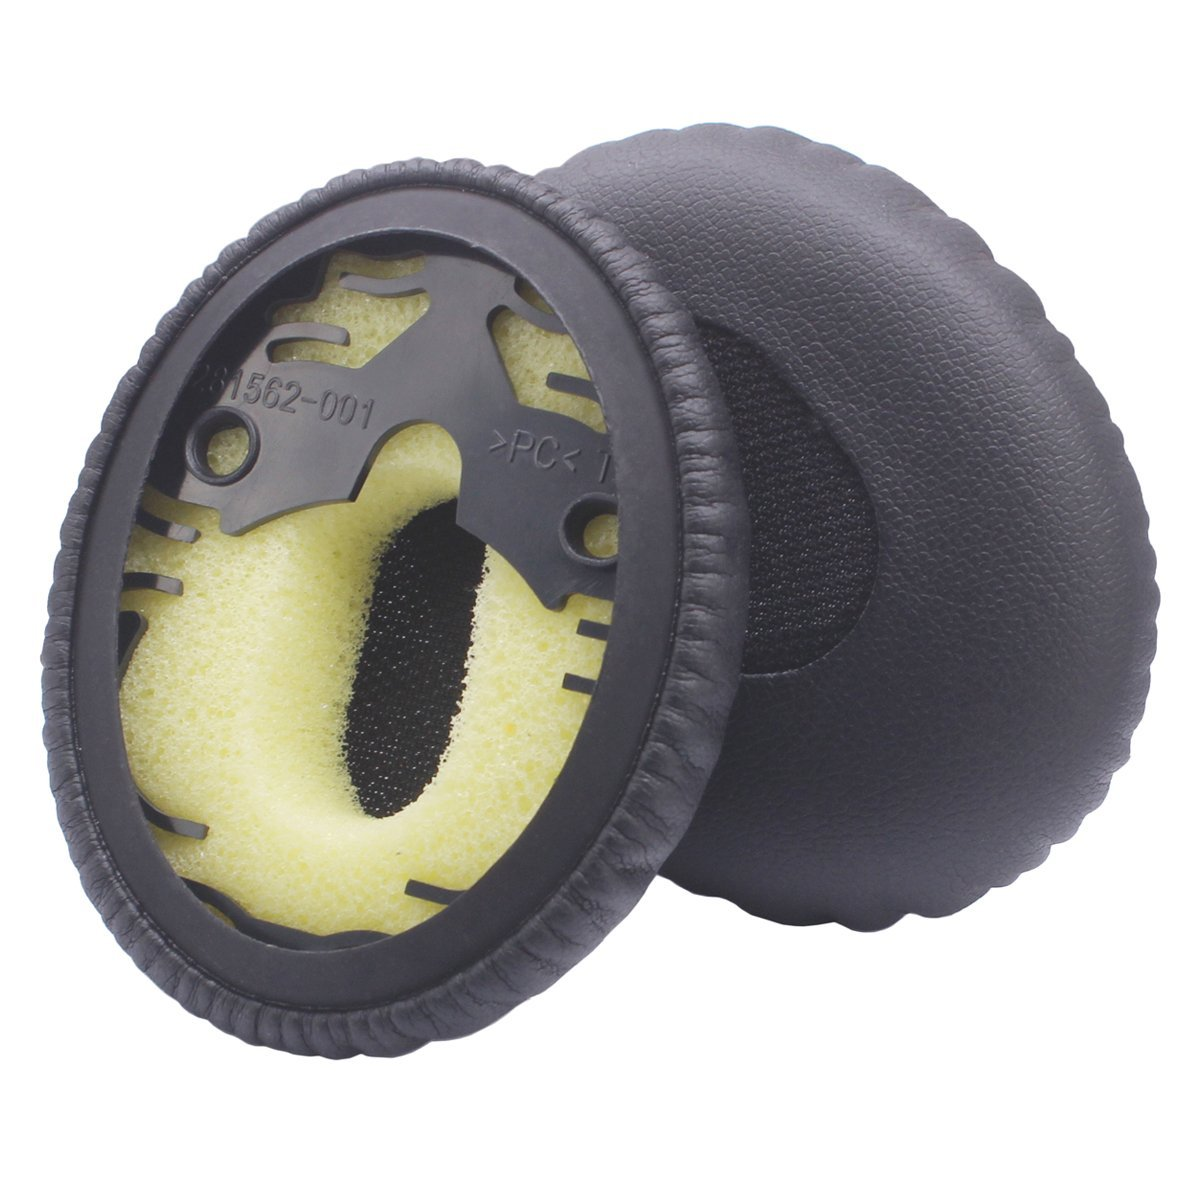 TSV Replacement Ear Pads Soft Pad Cushion for Boses Quietcomfort 3 QC3 Headphone